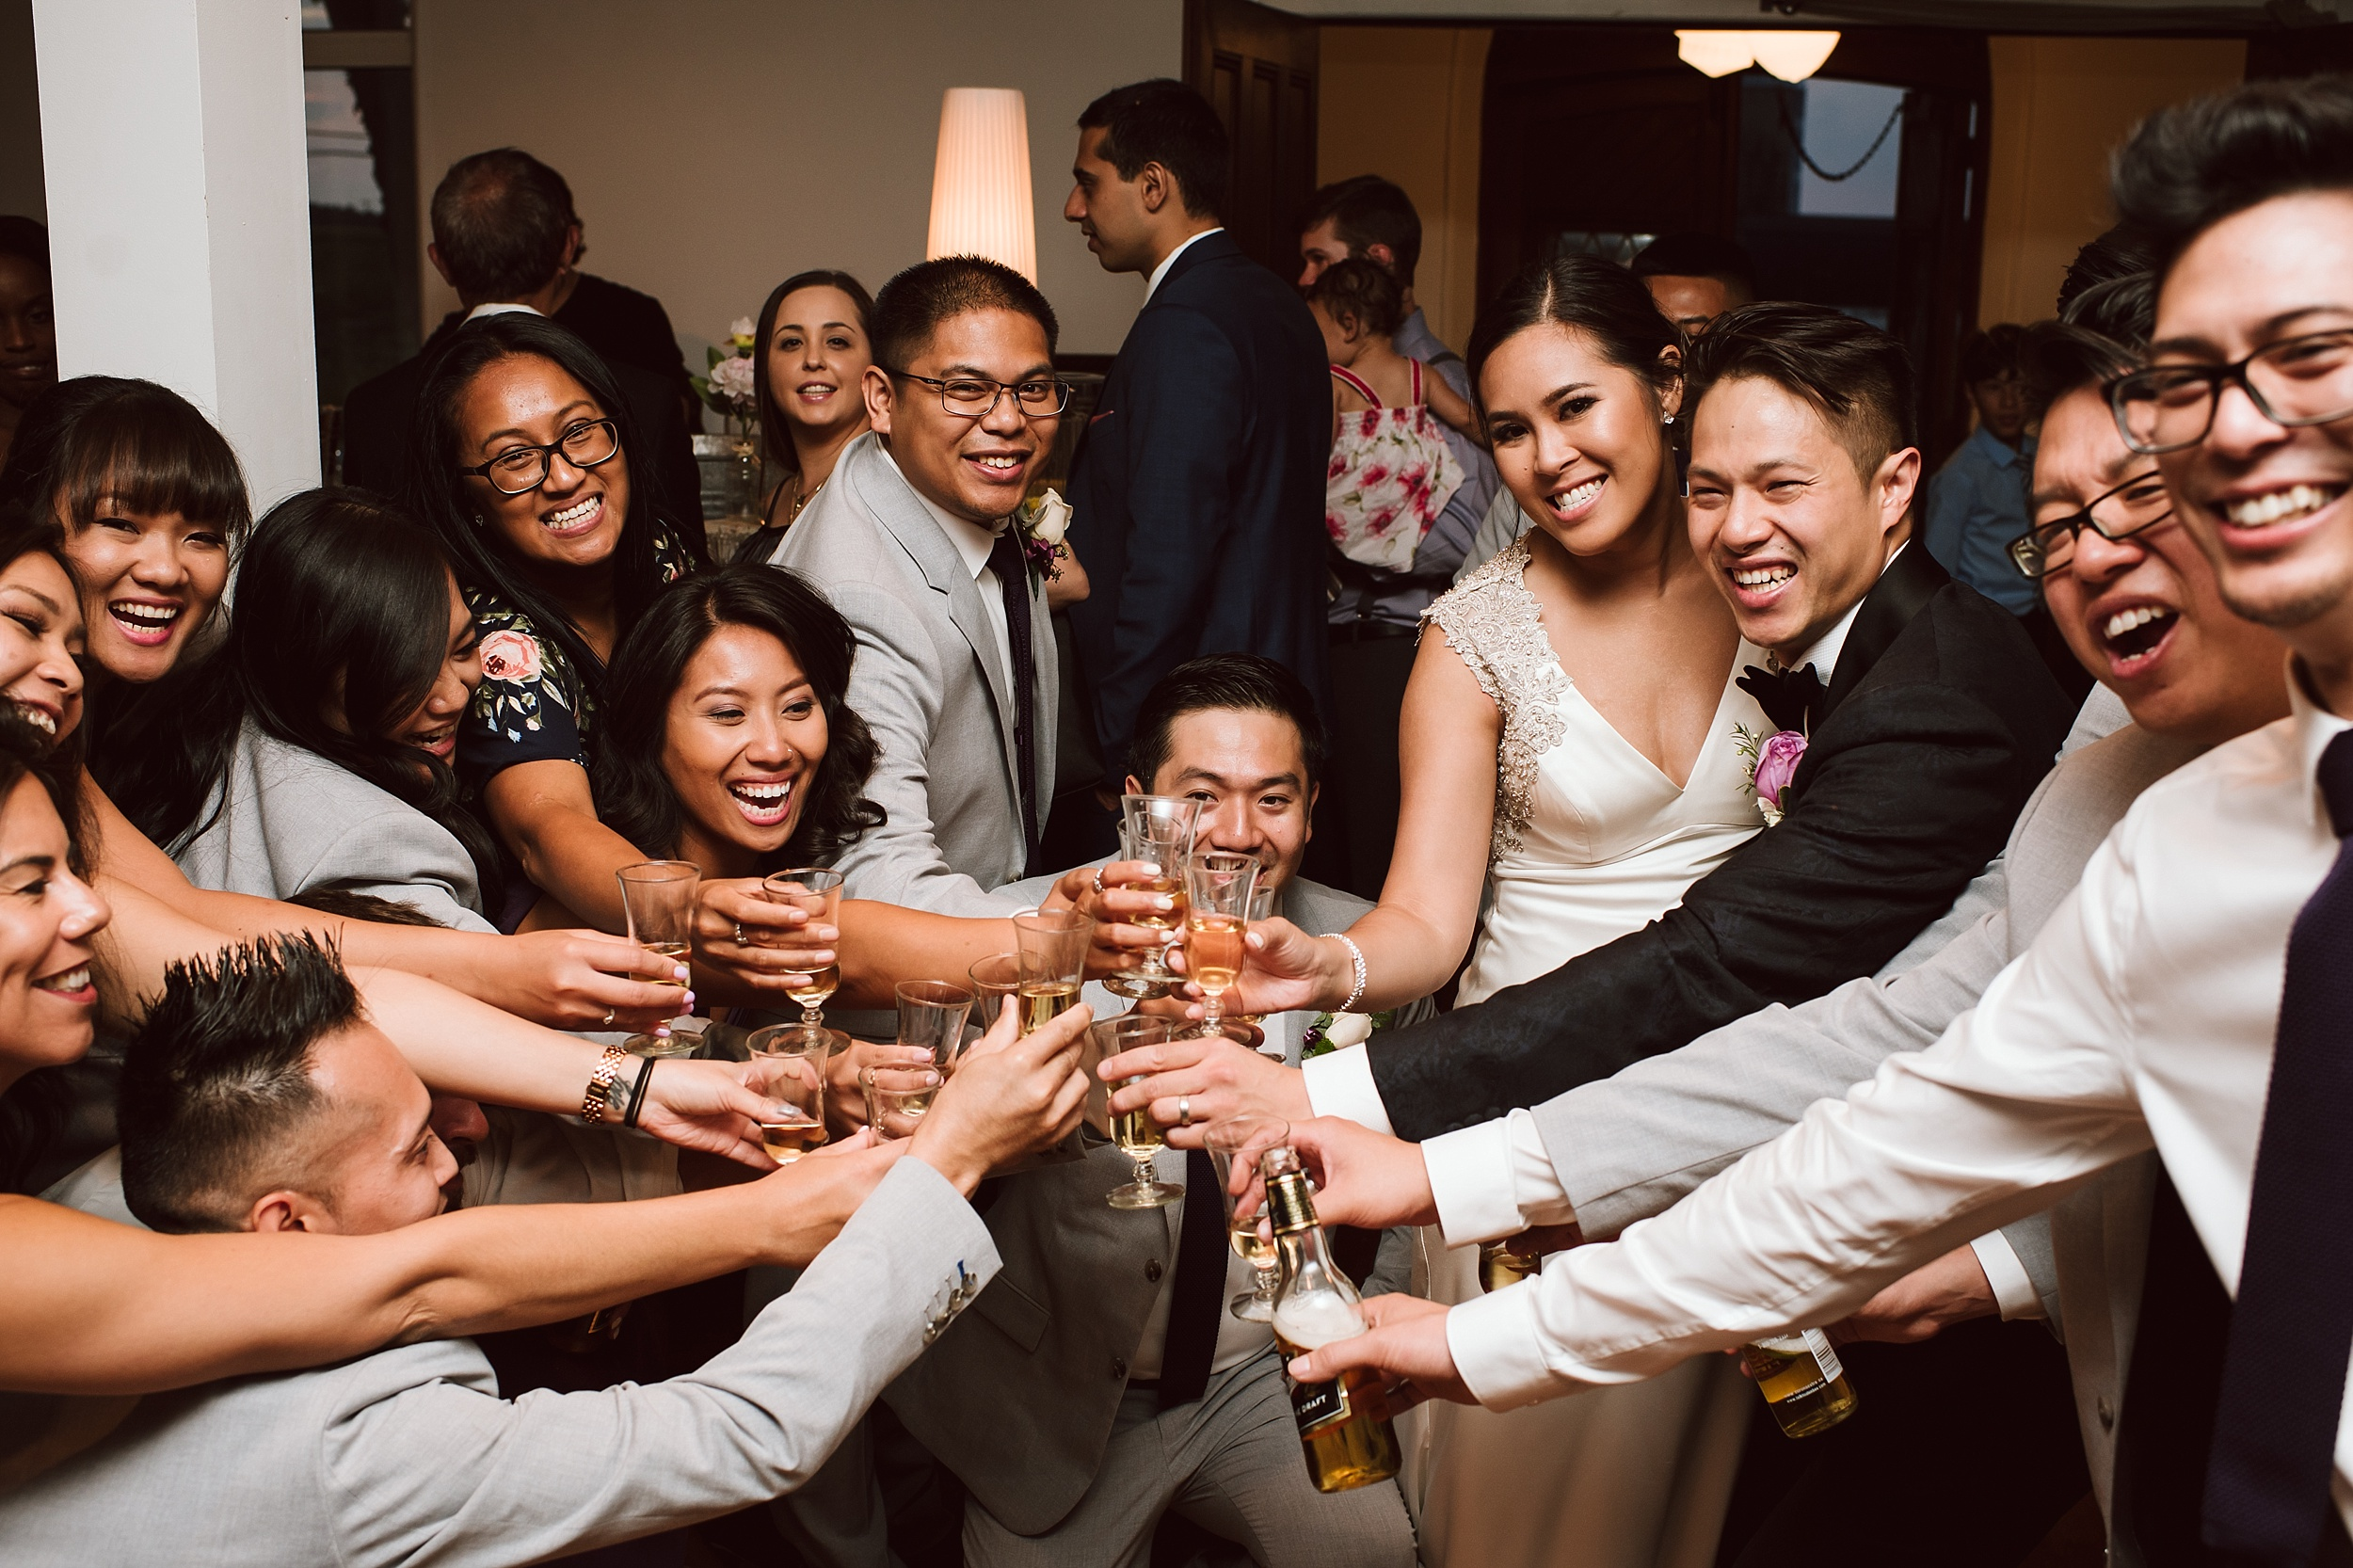 Hartman_Gallery_Mount_Albert_Toronto_Wedding_Photographer_0064.jpg